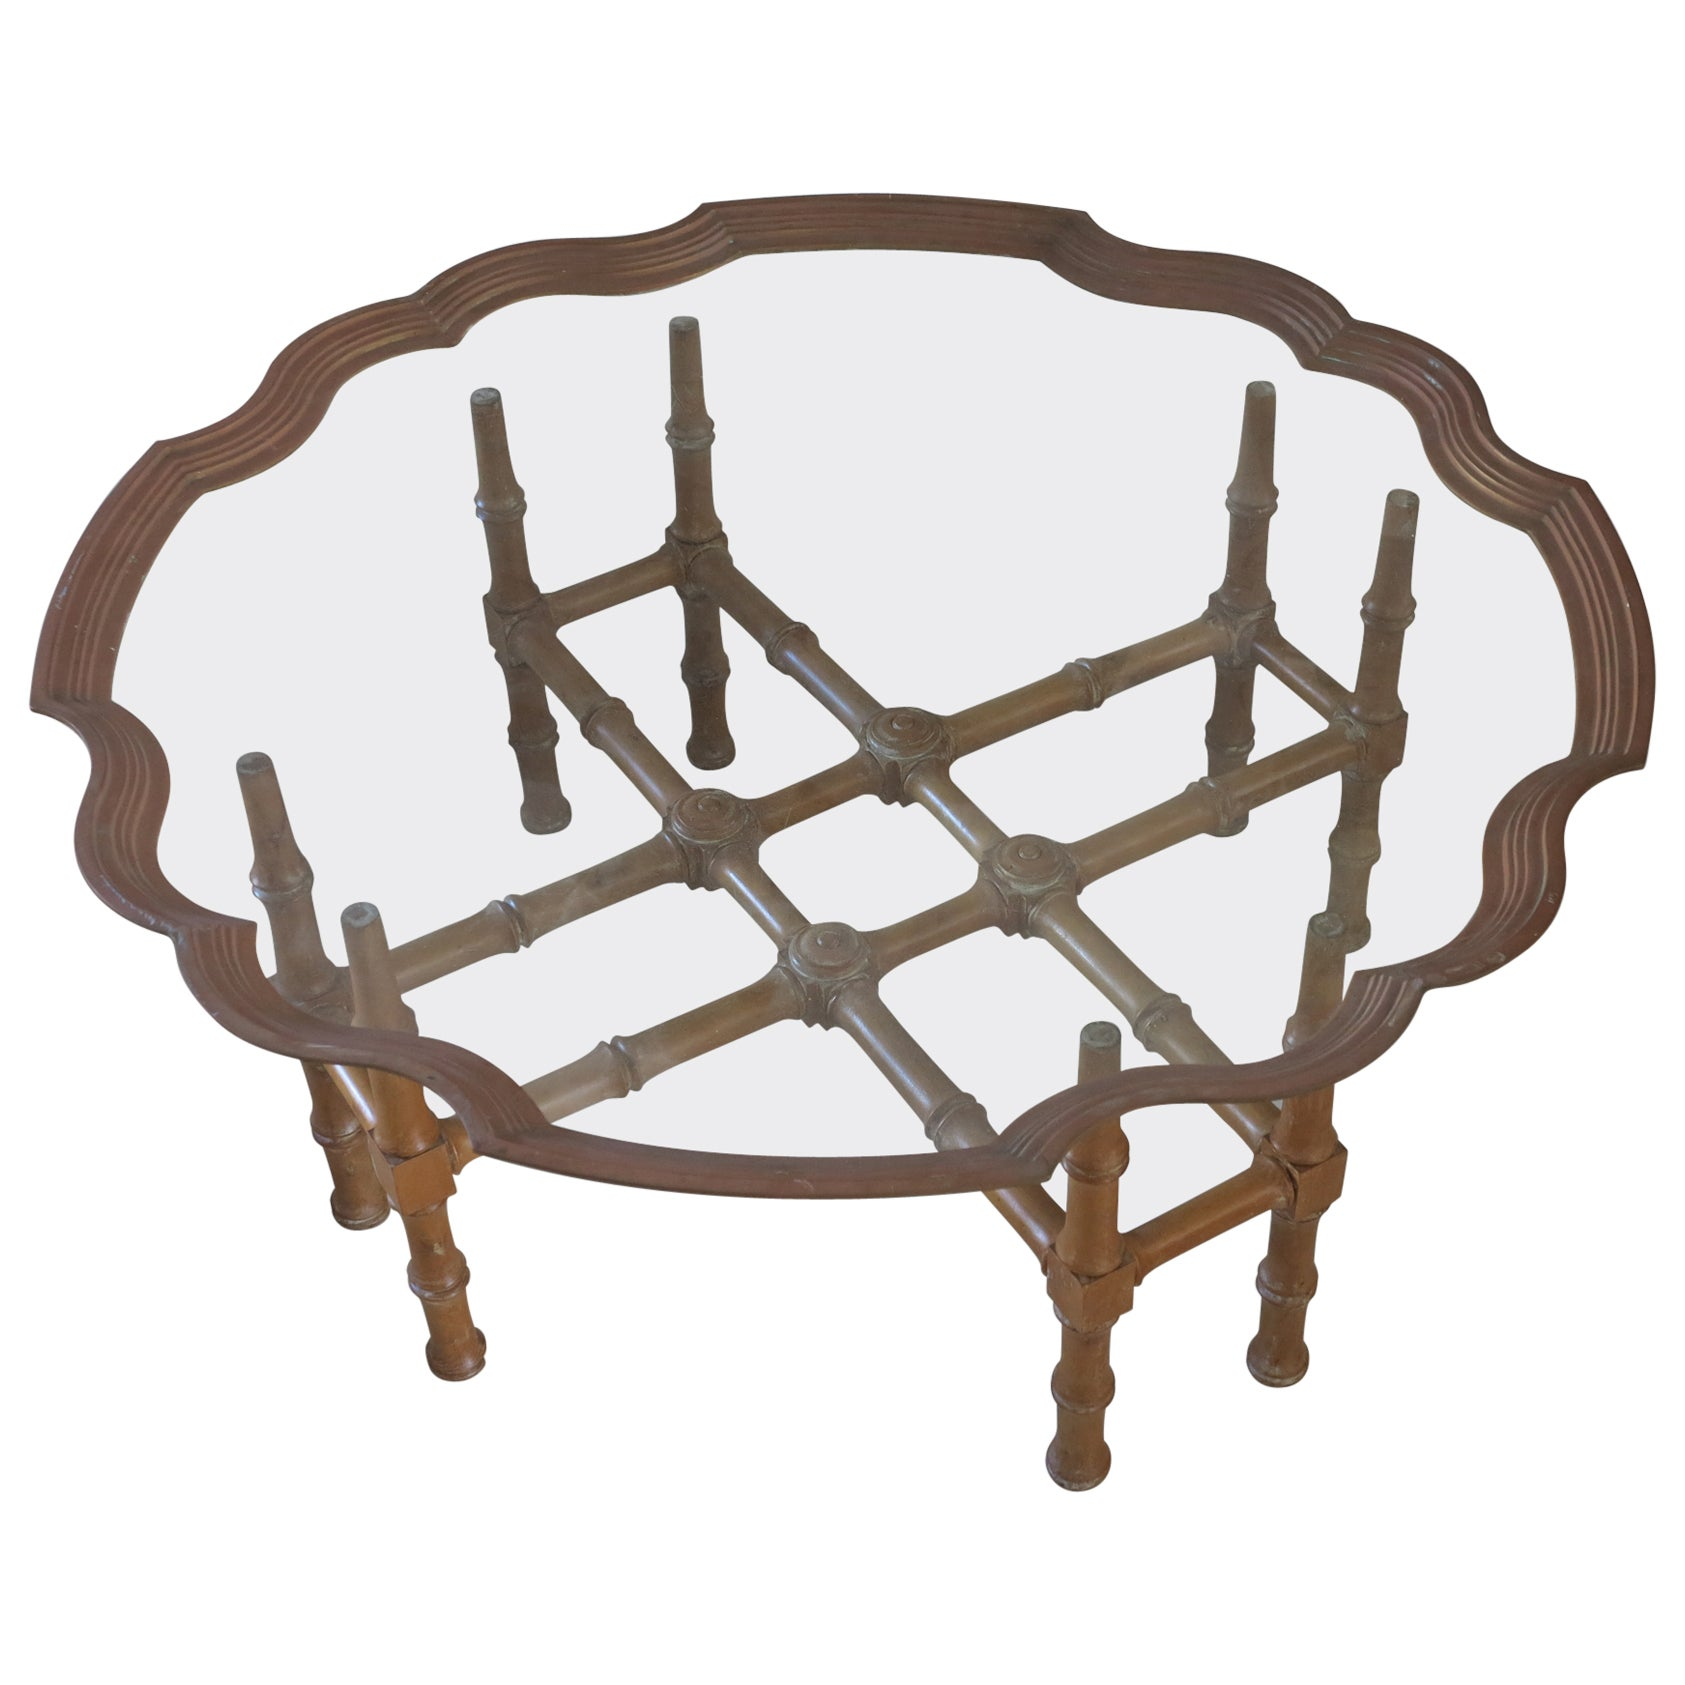 Vintage Faux Bamboo Coffee Table with Ornate Brass and Glass Top